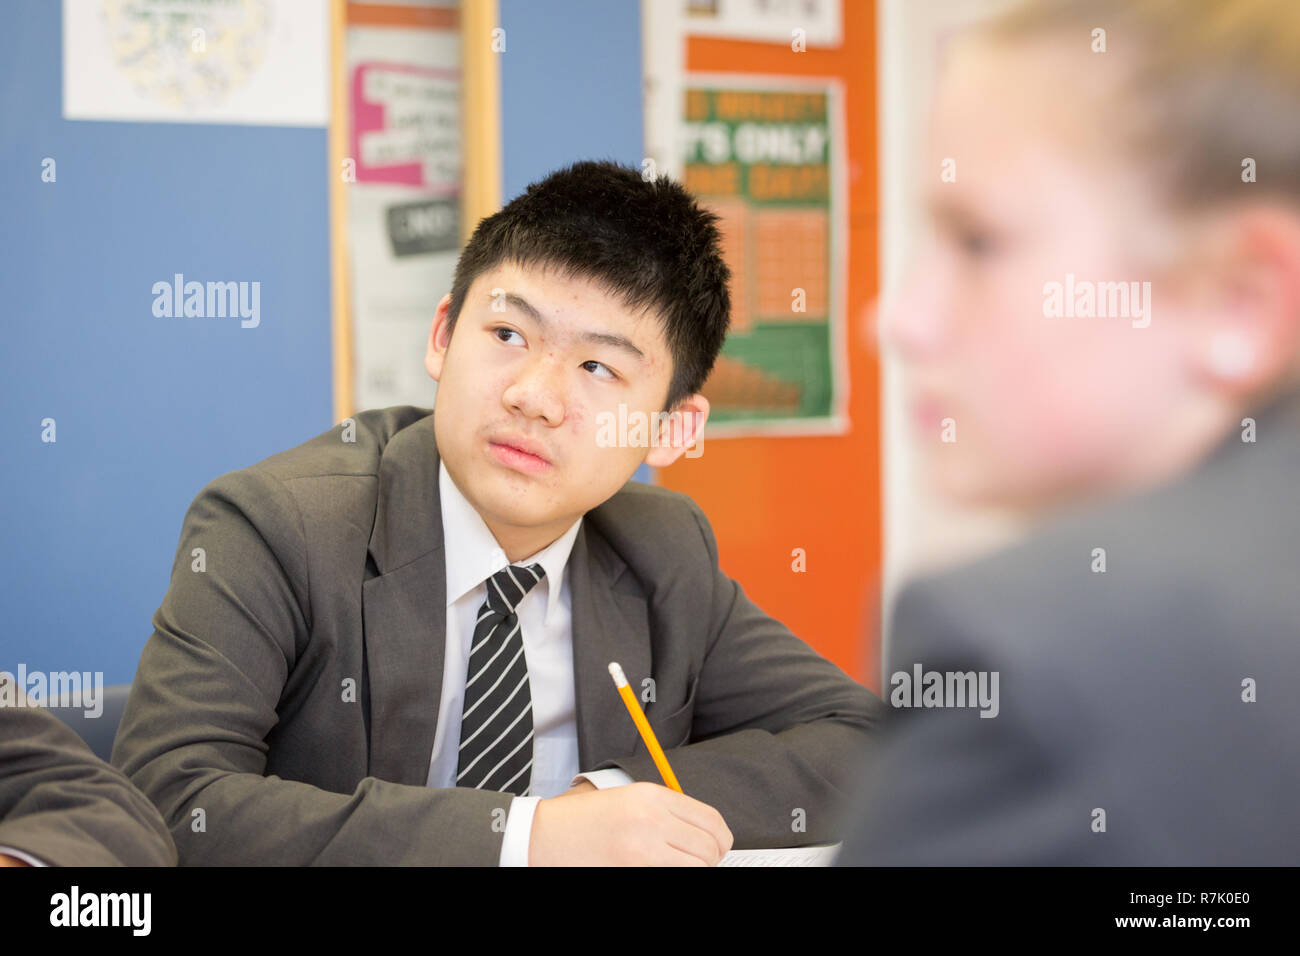 14 Year Old Asian Boy High Resolution Stock Photography And Images Alamy